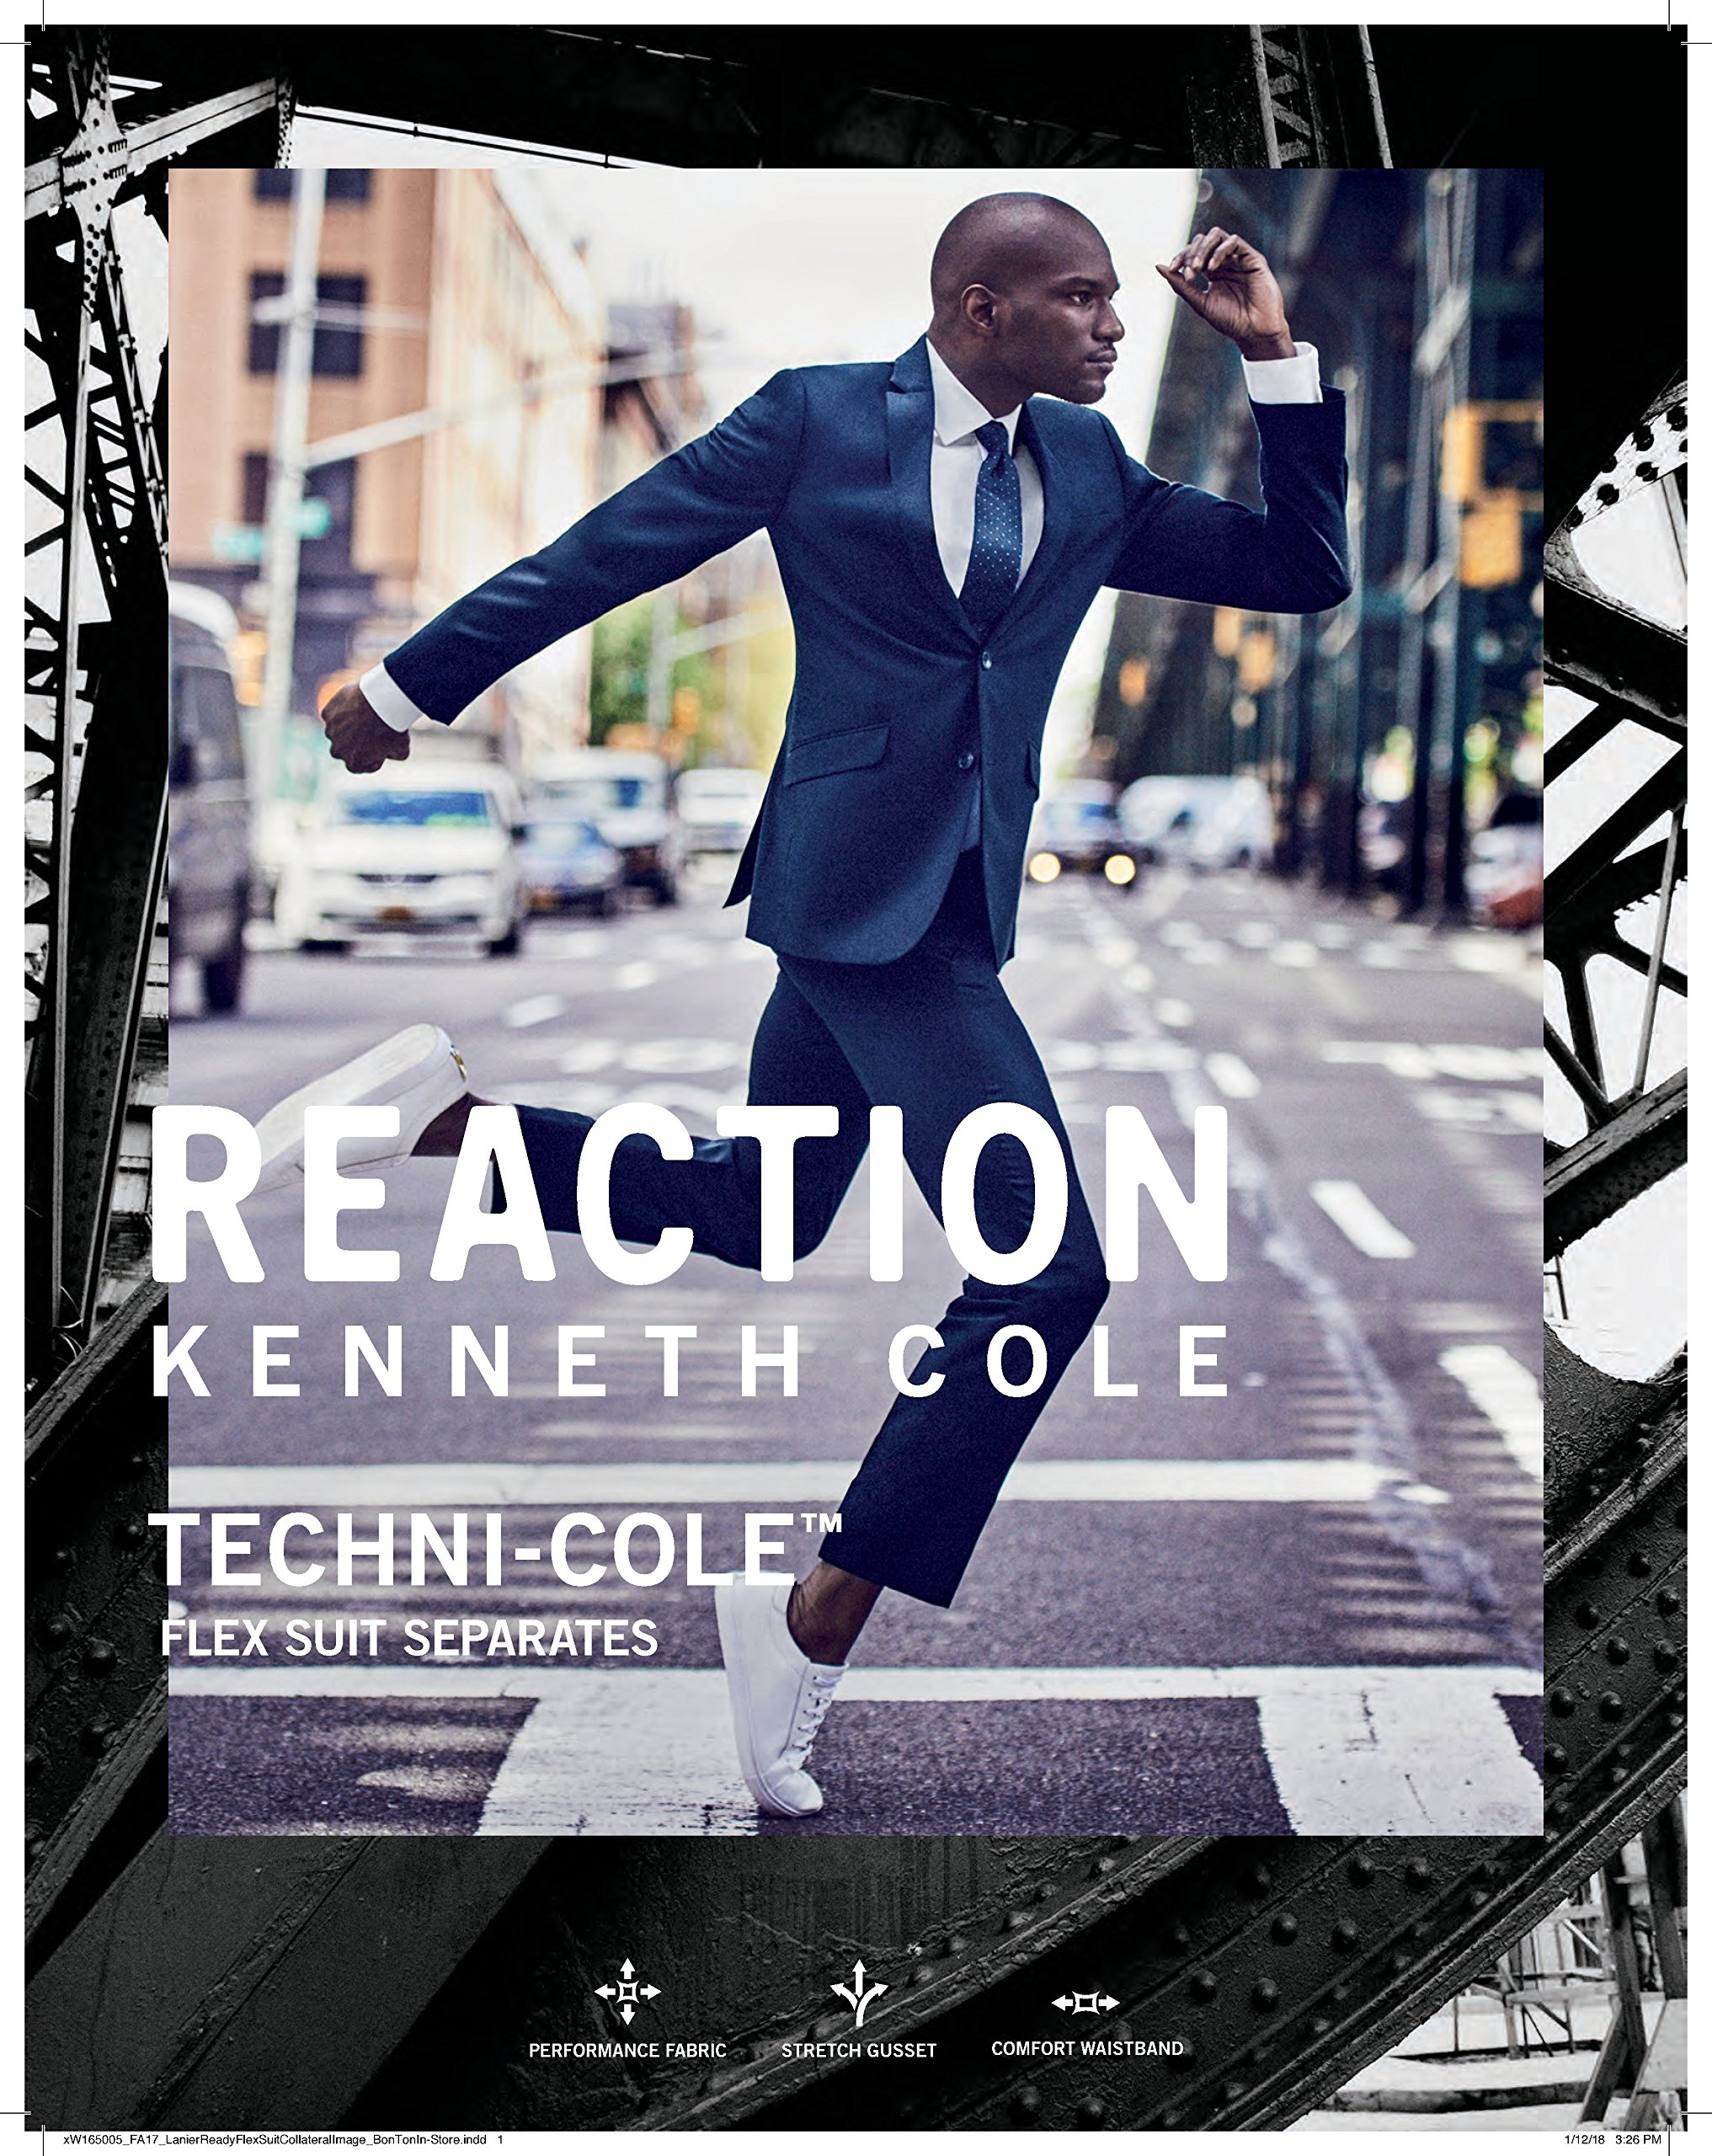 Kenneth Cole REACTION Men's Techni-Cole Stretch Slim Fit Suit Separate Blazer (Blazer, Pant, and Vest), Modern Blue, 48 Long by Kenneth Cole REACTION (Image #4)